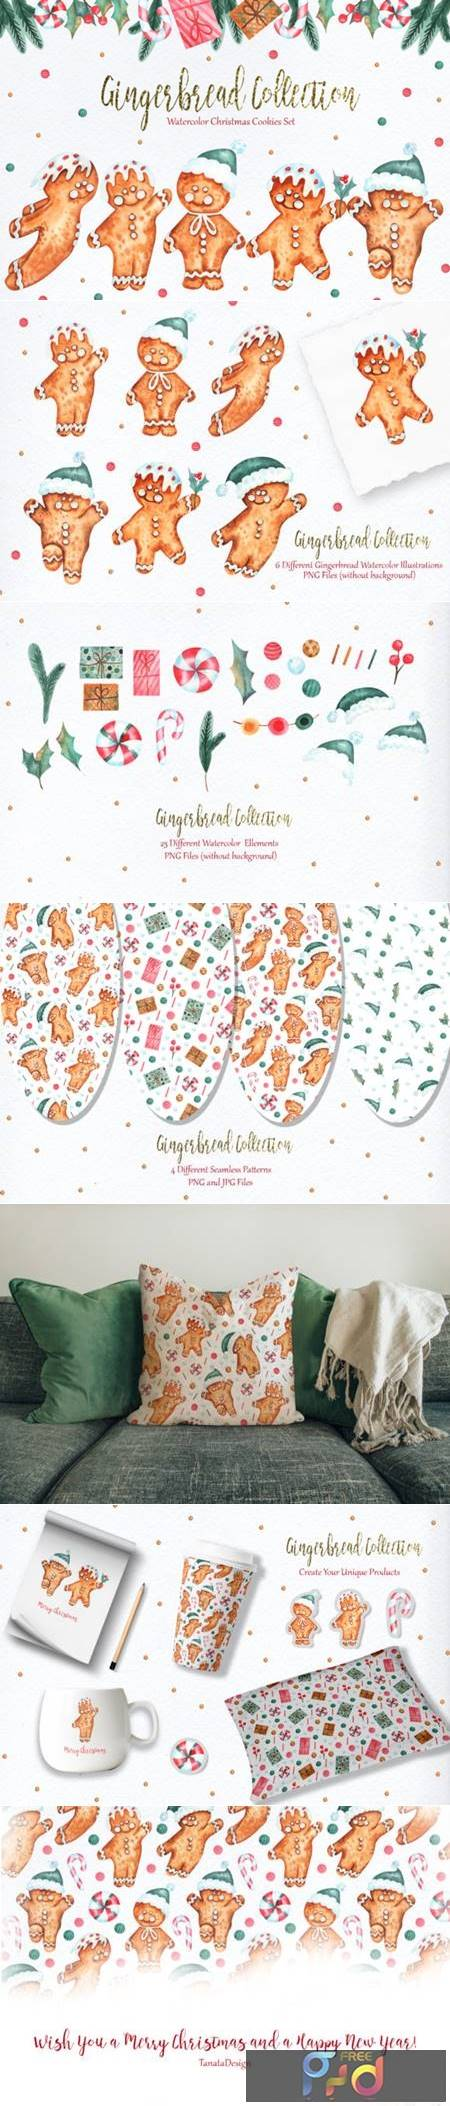 Watercolor Gingerbread Collection 7077770 1